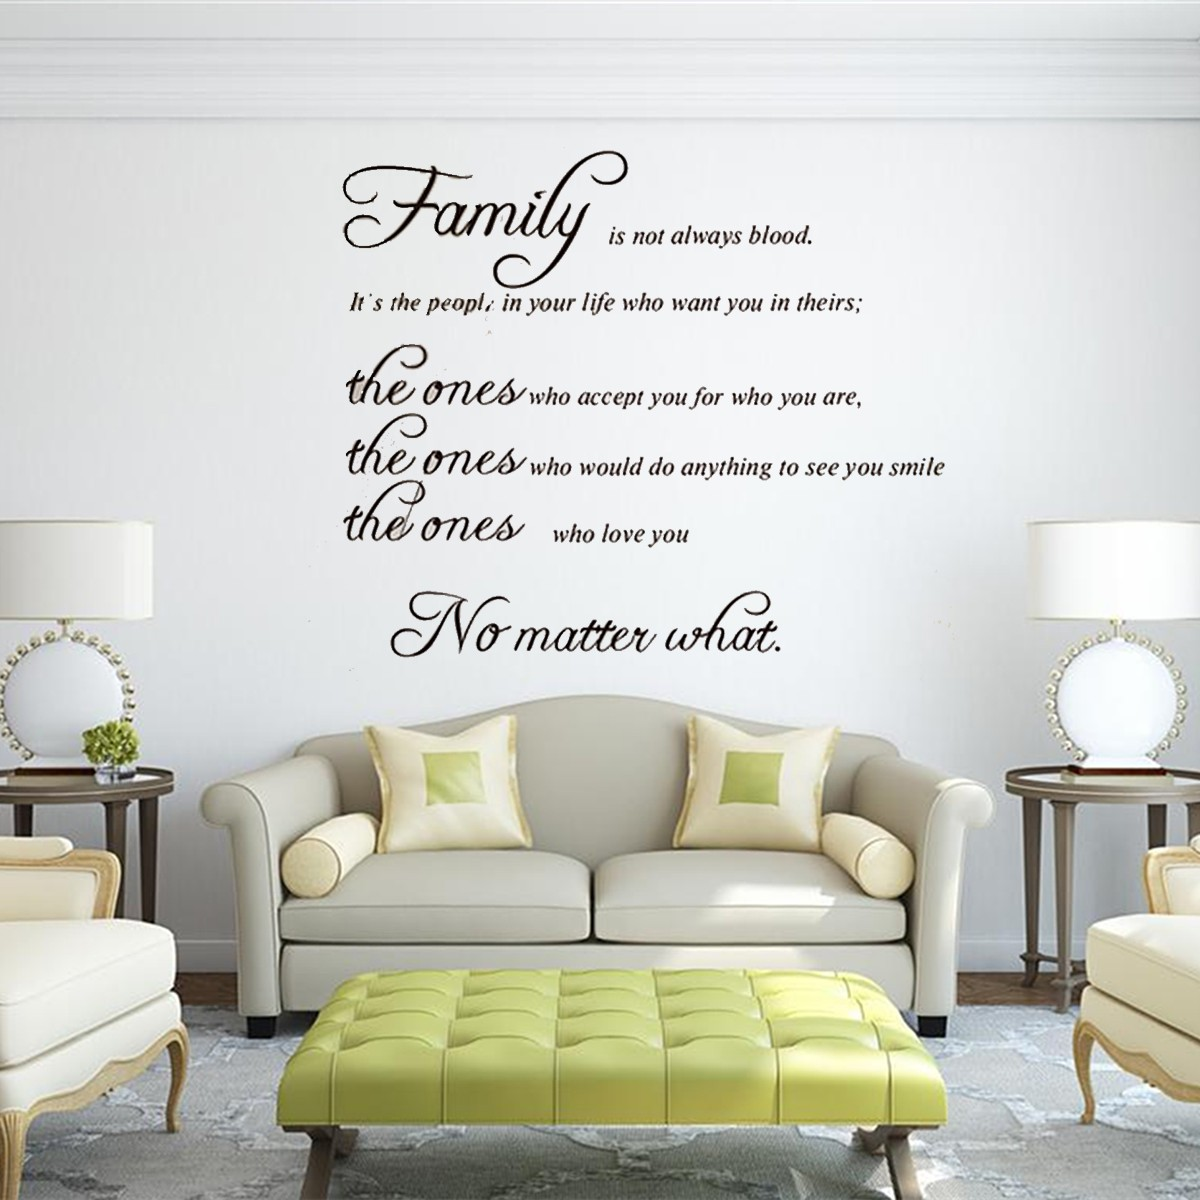 Removable family quote wall sticker decal mural diy living for Room decor lazada